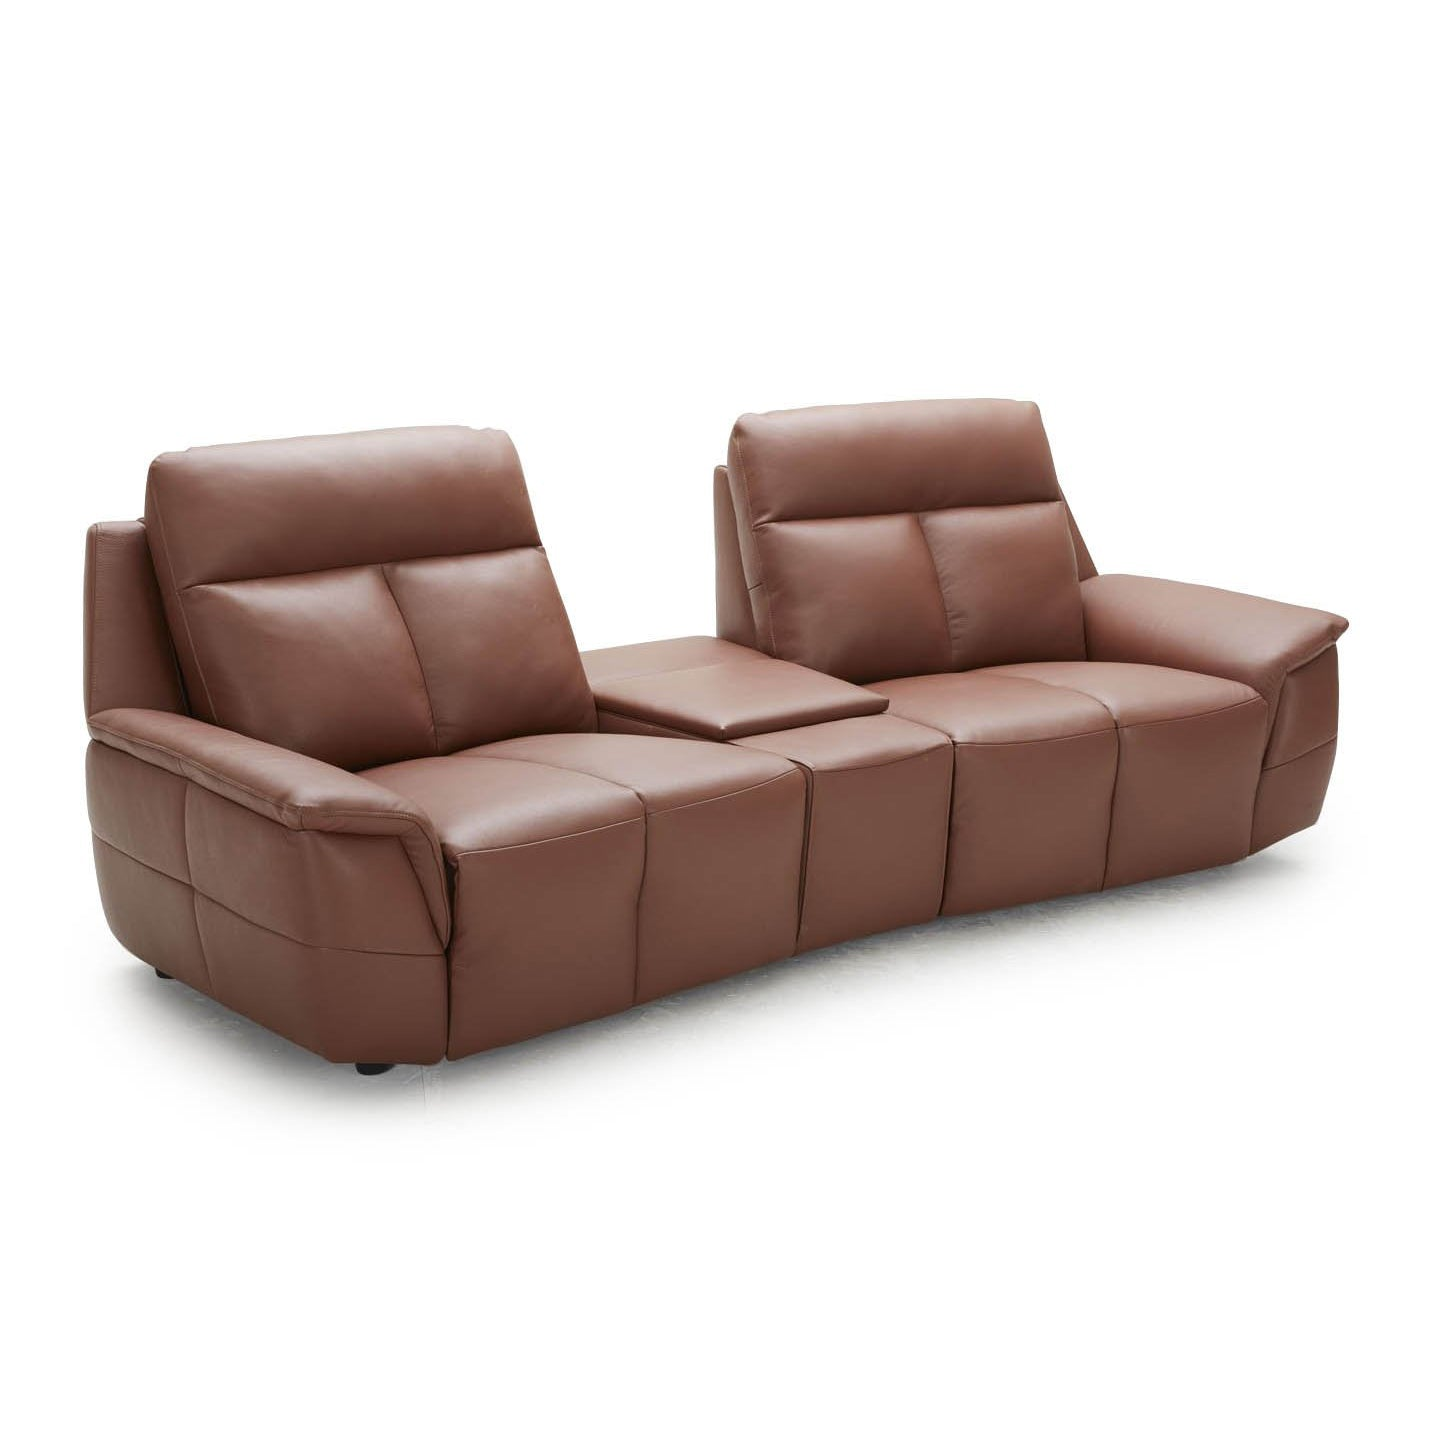 All Leather Sofas